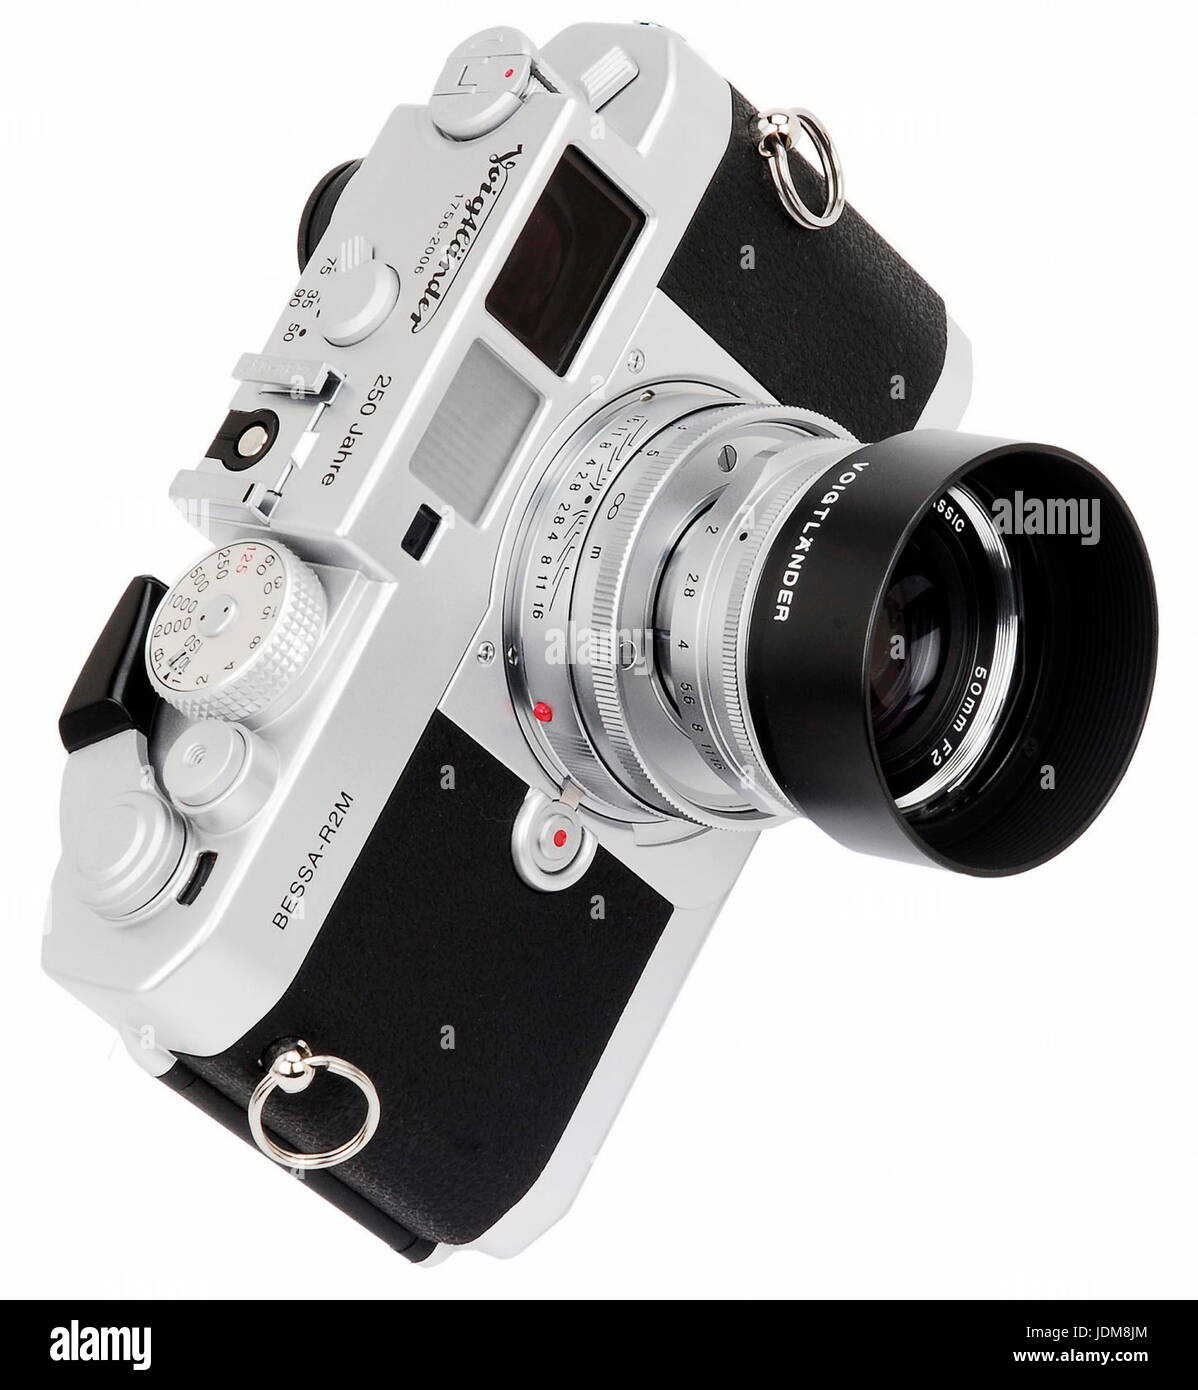 AJAXNETPHOTO. JAPAN. VOIGTLANDER BESSA-R2M 250 JAHRE SPECIAL EDITION 35MM RANGEFINDER FILM CAMERA FITTED WITH 50MM - Stock Image